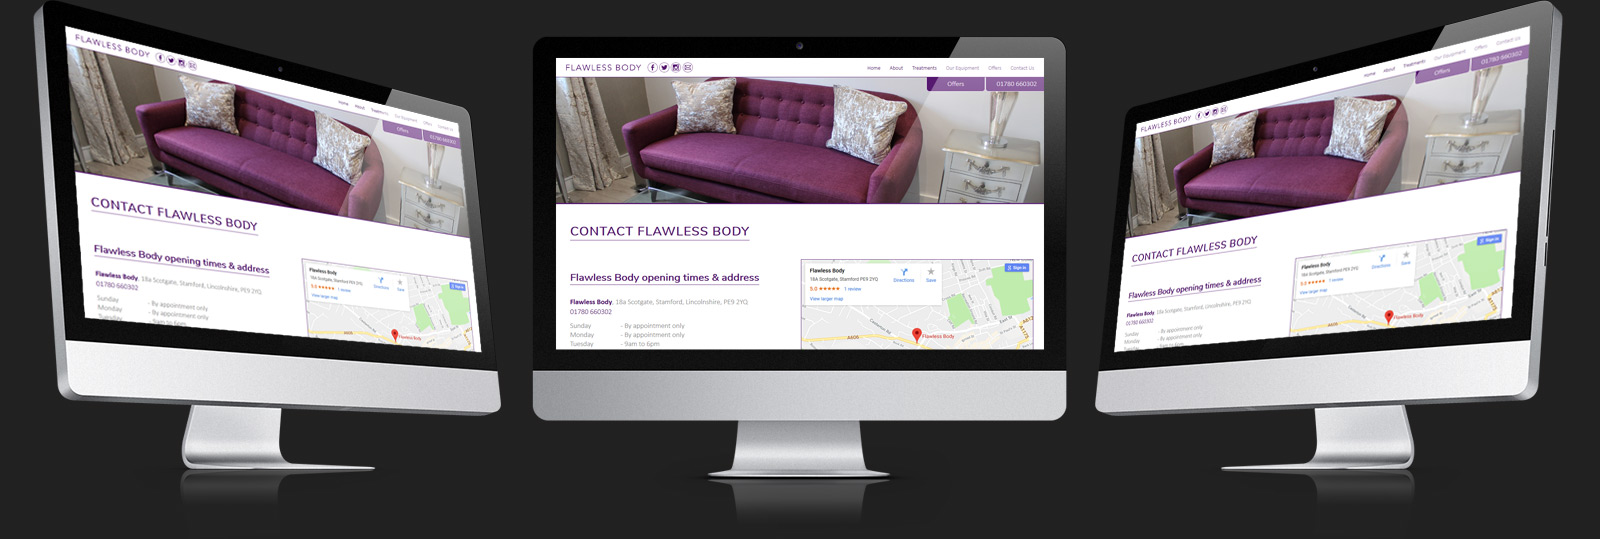 Stamford Web Design - Flawless Body